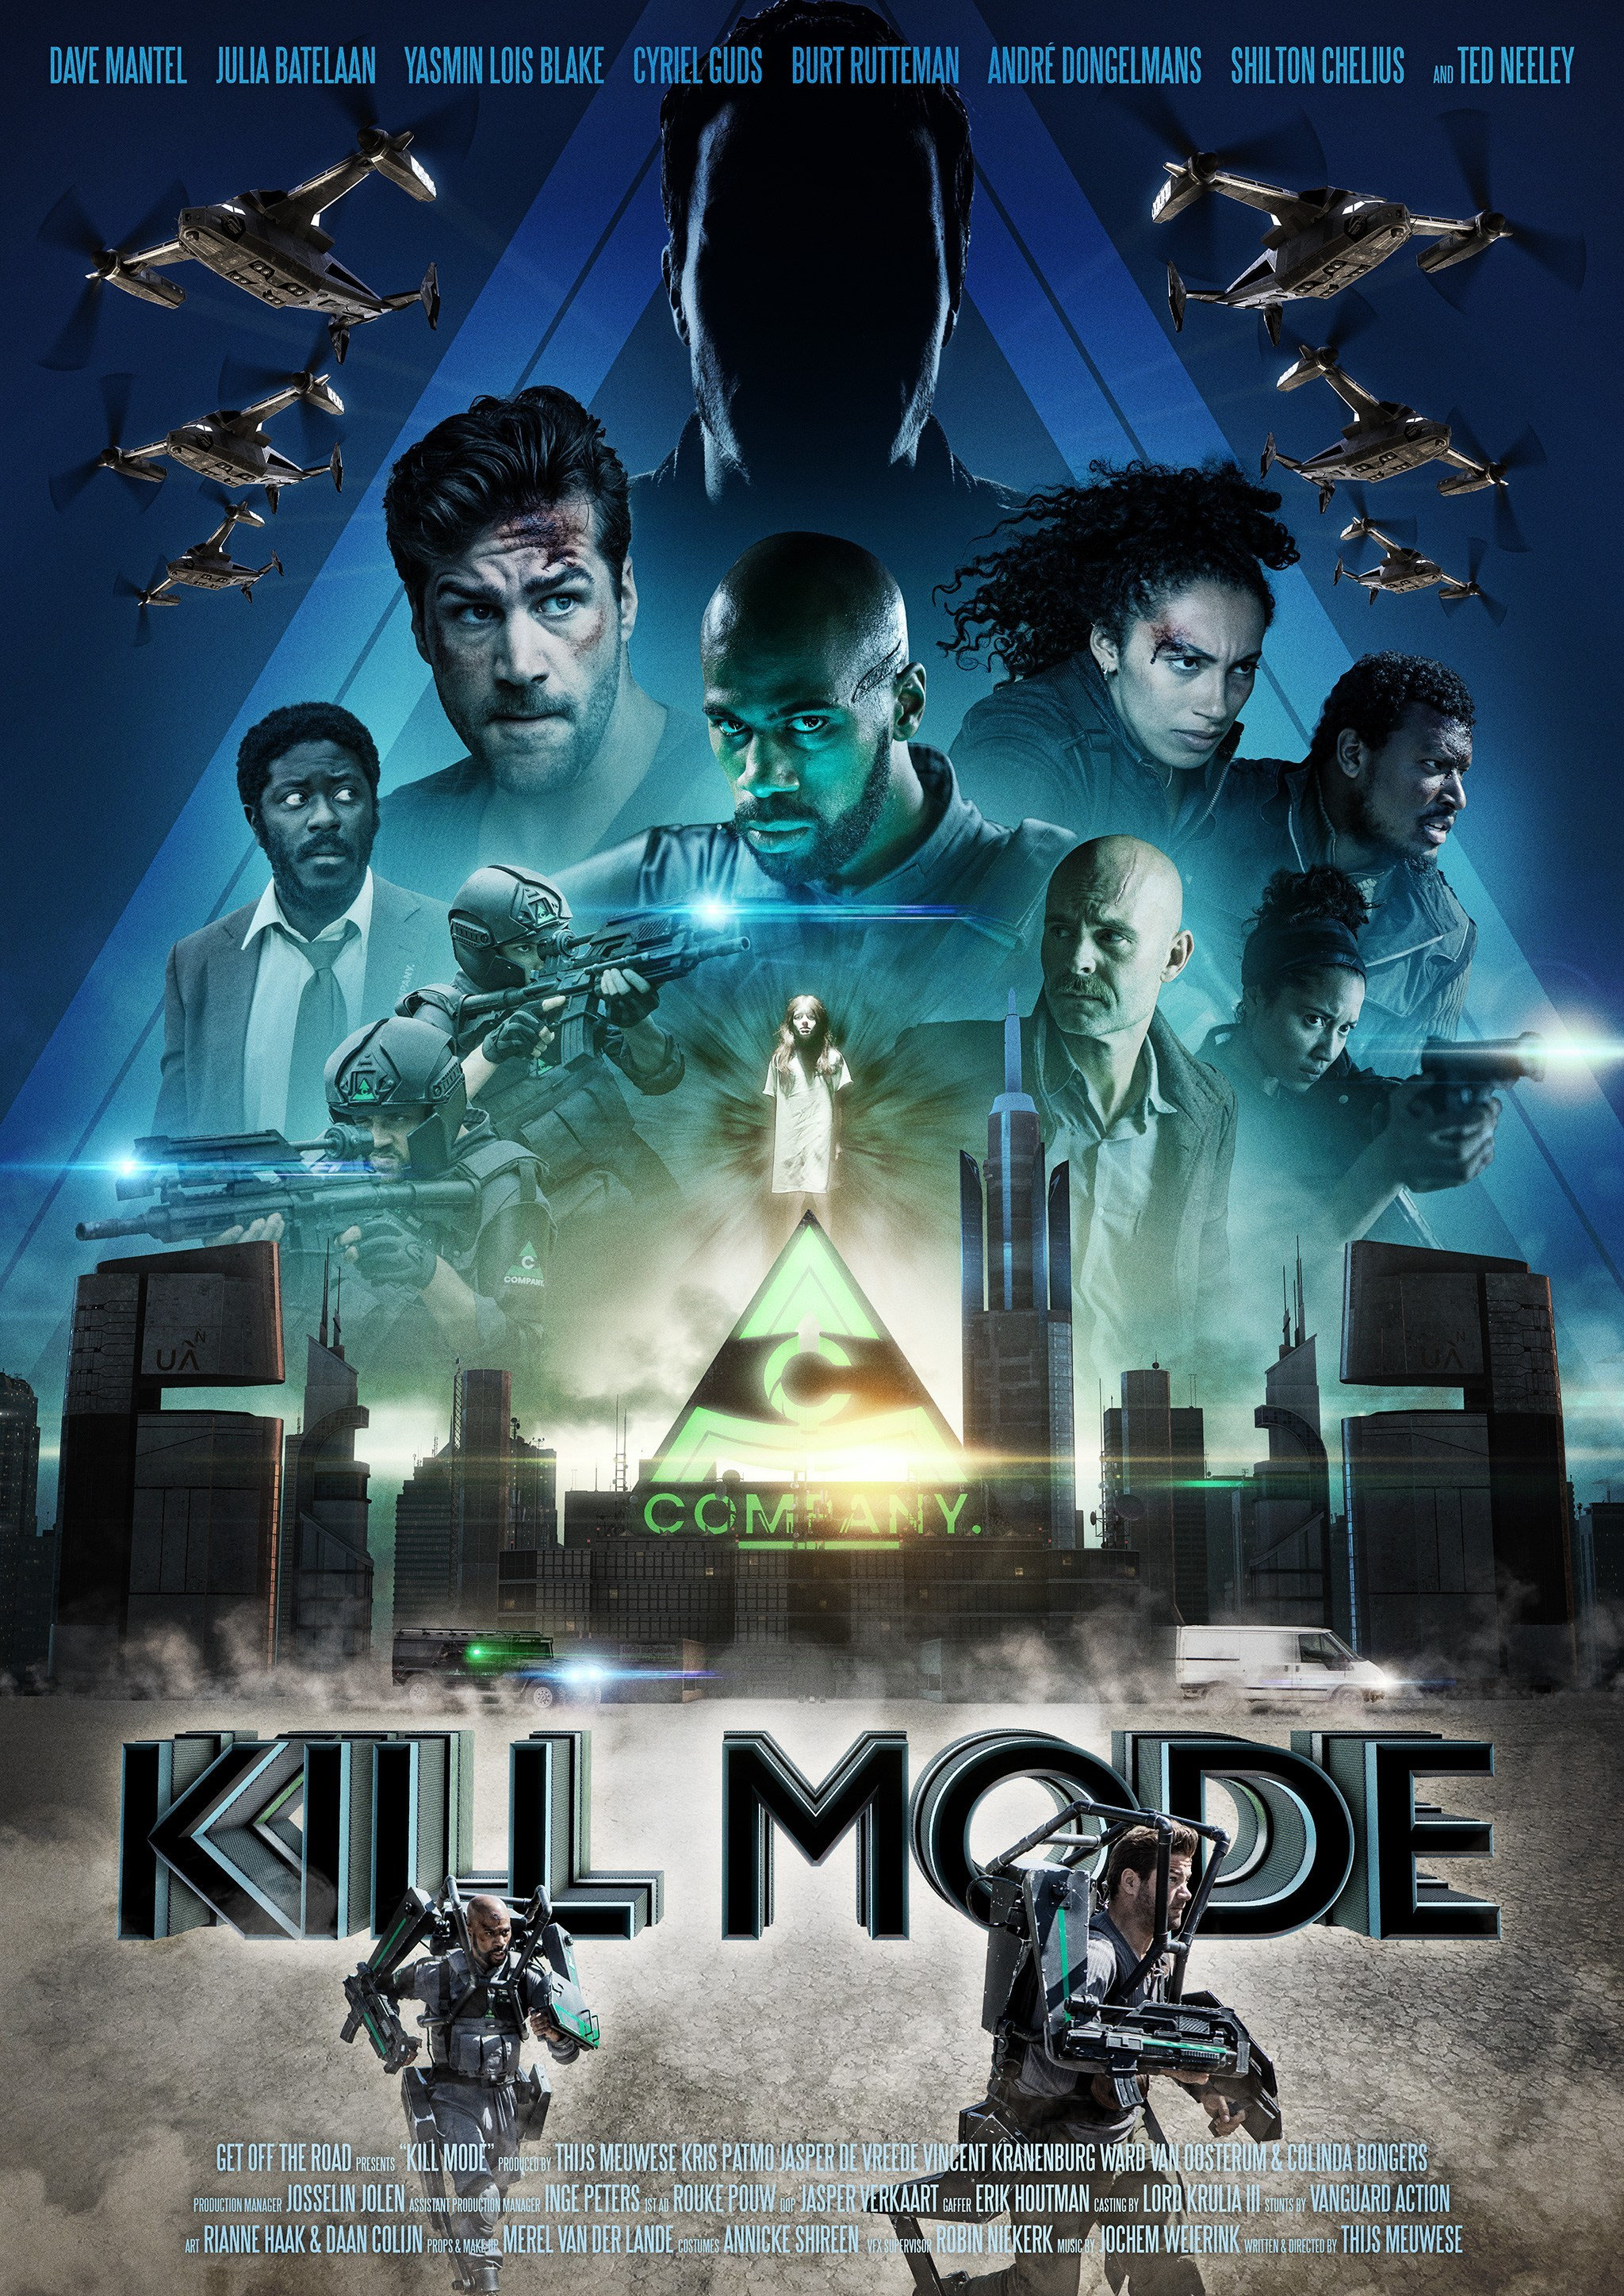 KILL MODE, Action/Science Fiction (post-production)